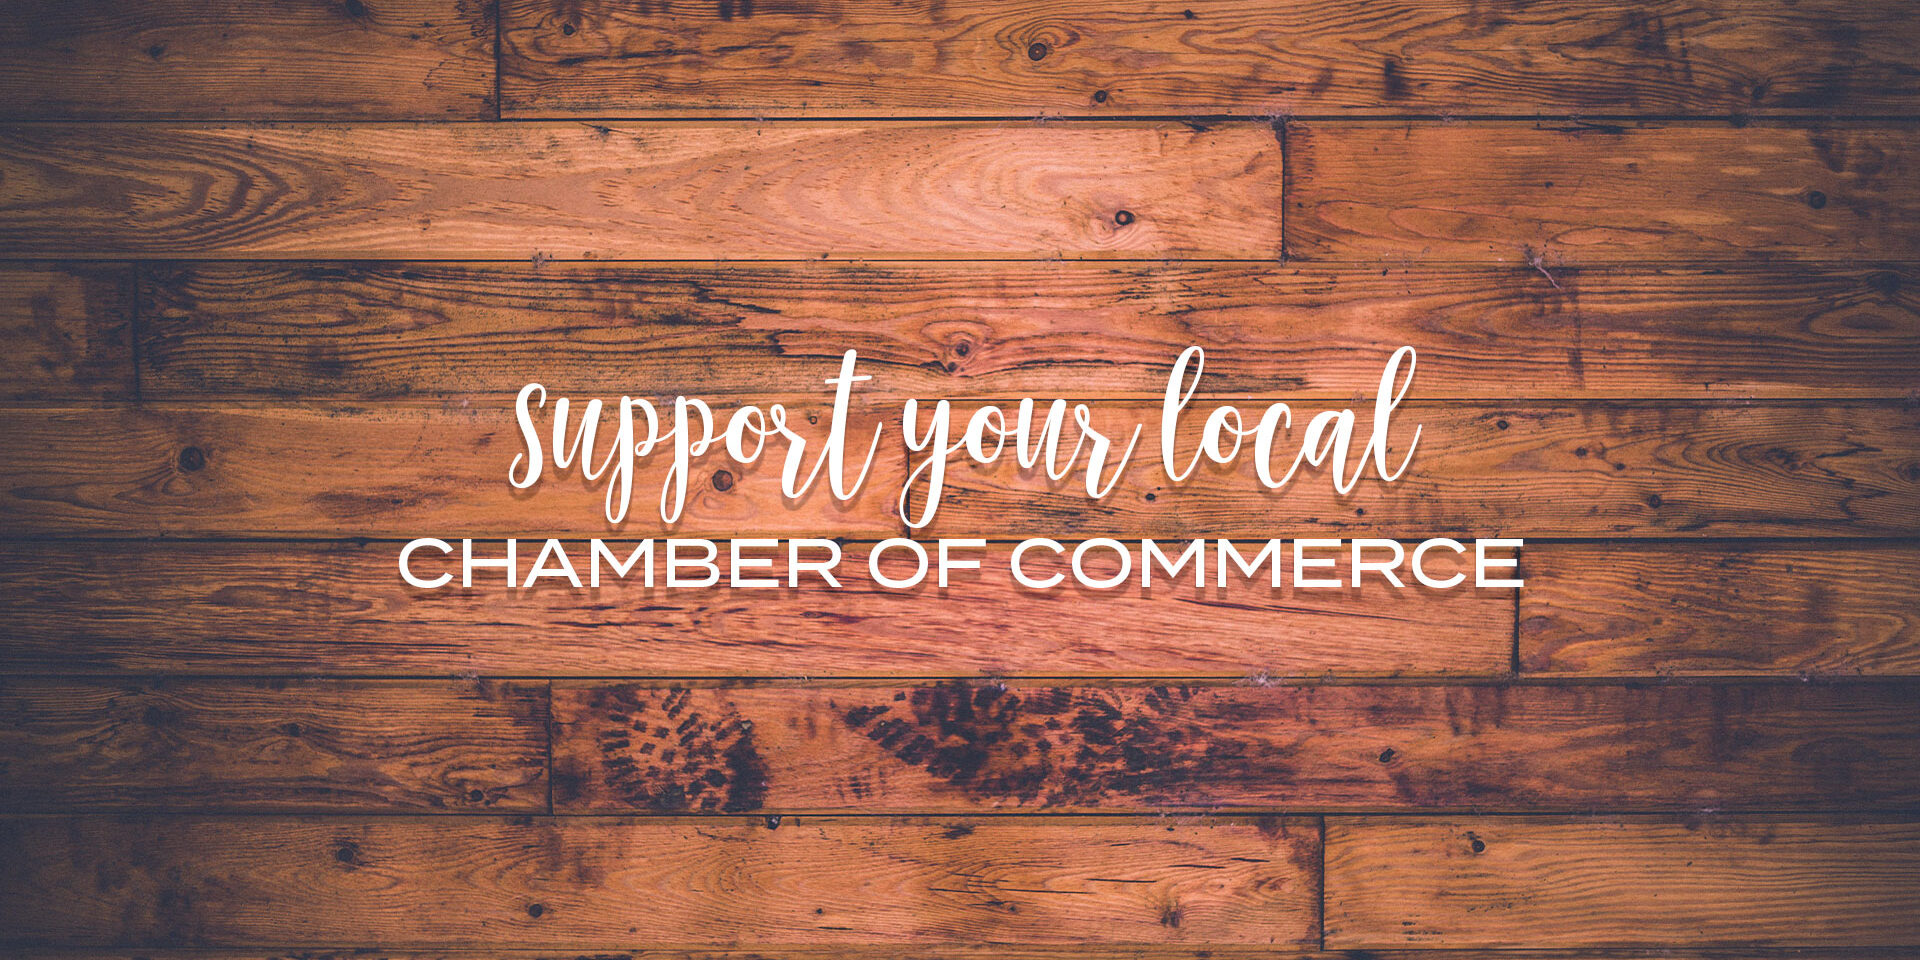 Support your local chamber on national local chamber of commerce day